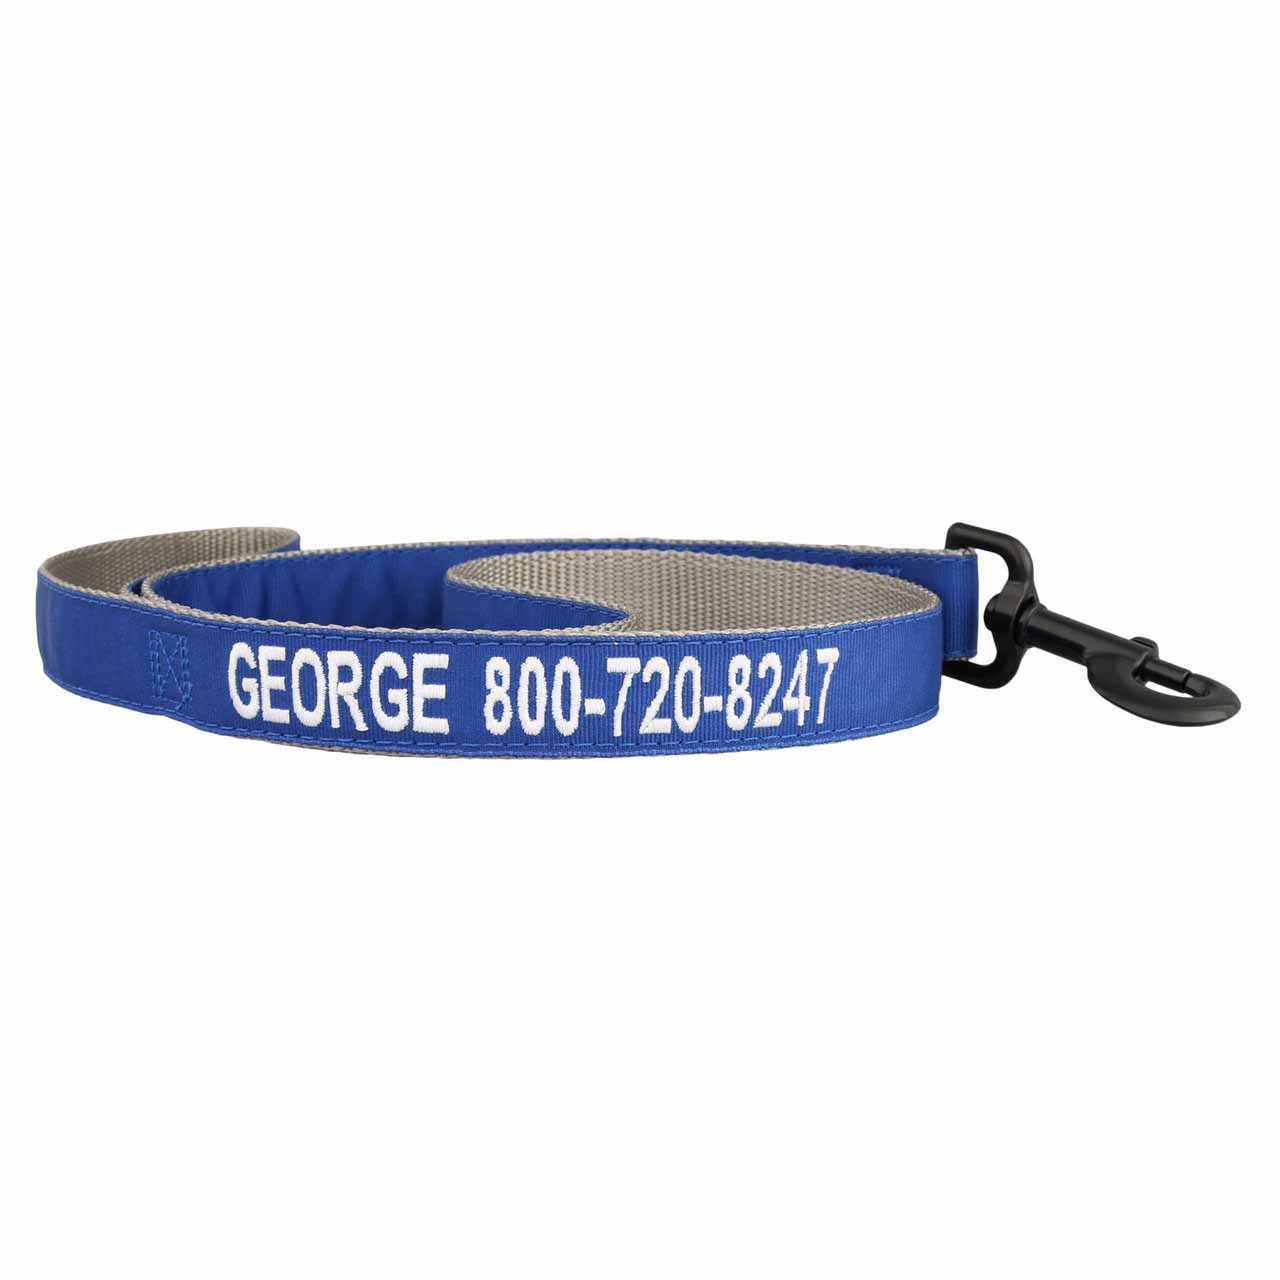 Embroidered Solid Color Personalized Dog Leash